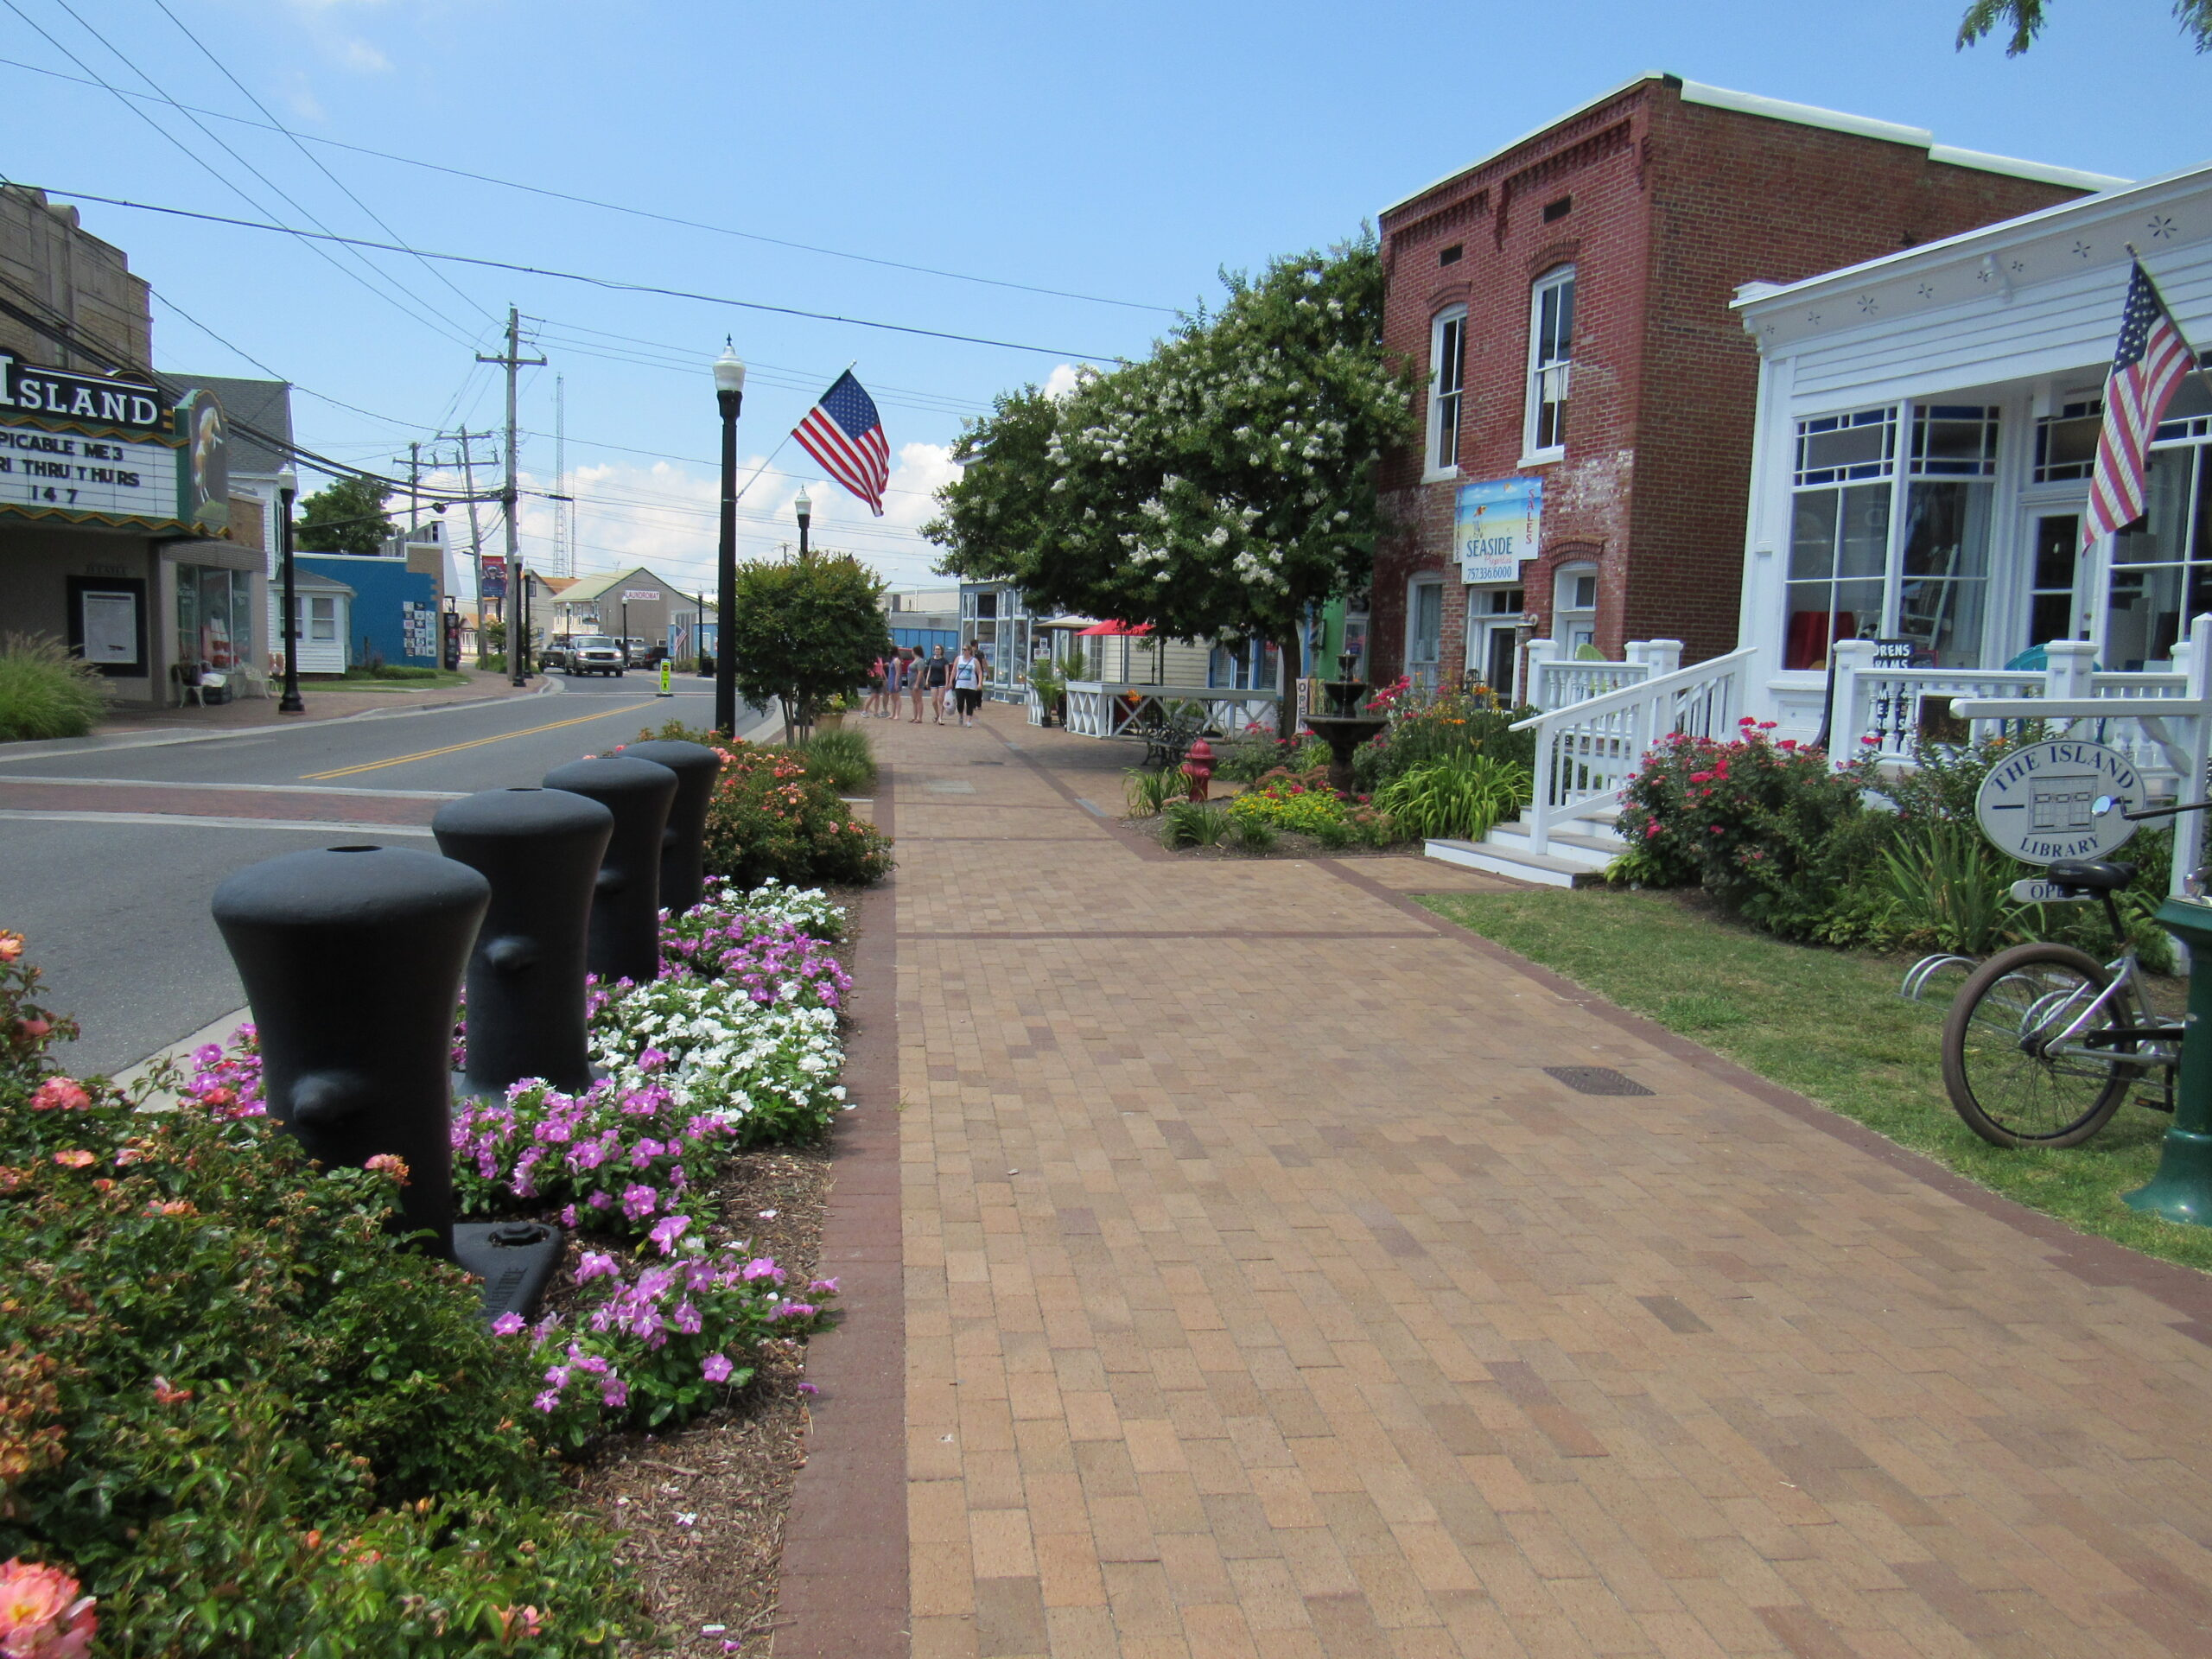 Historical buildings line the street in downtown Chincoteague.